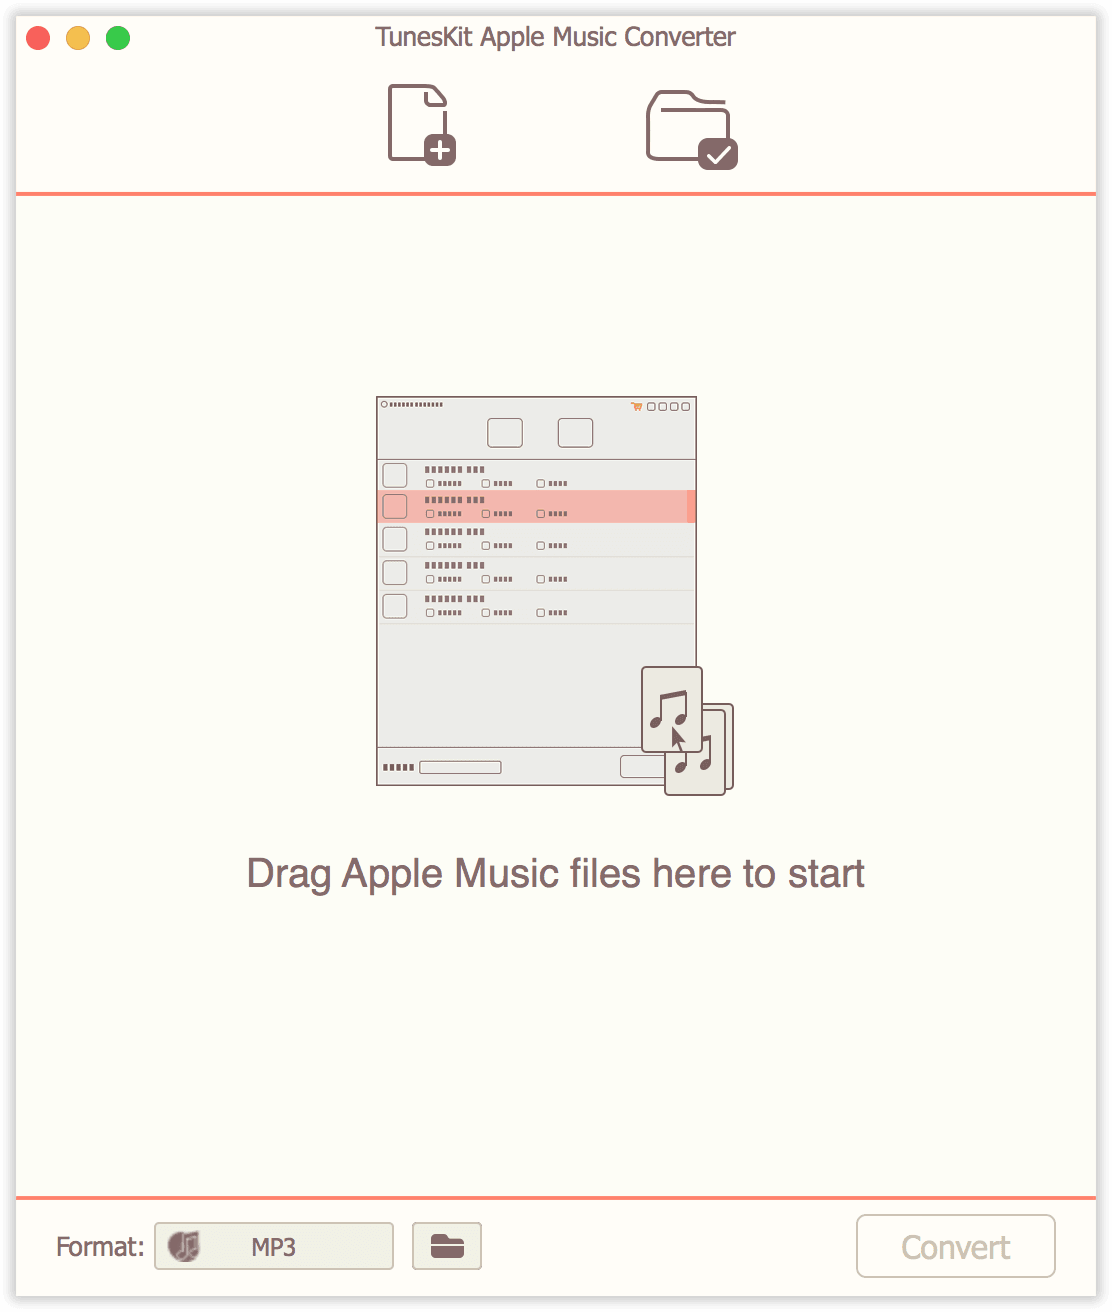 TunesKit Apple Music Converter 2.1.0 格式转换 第3张